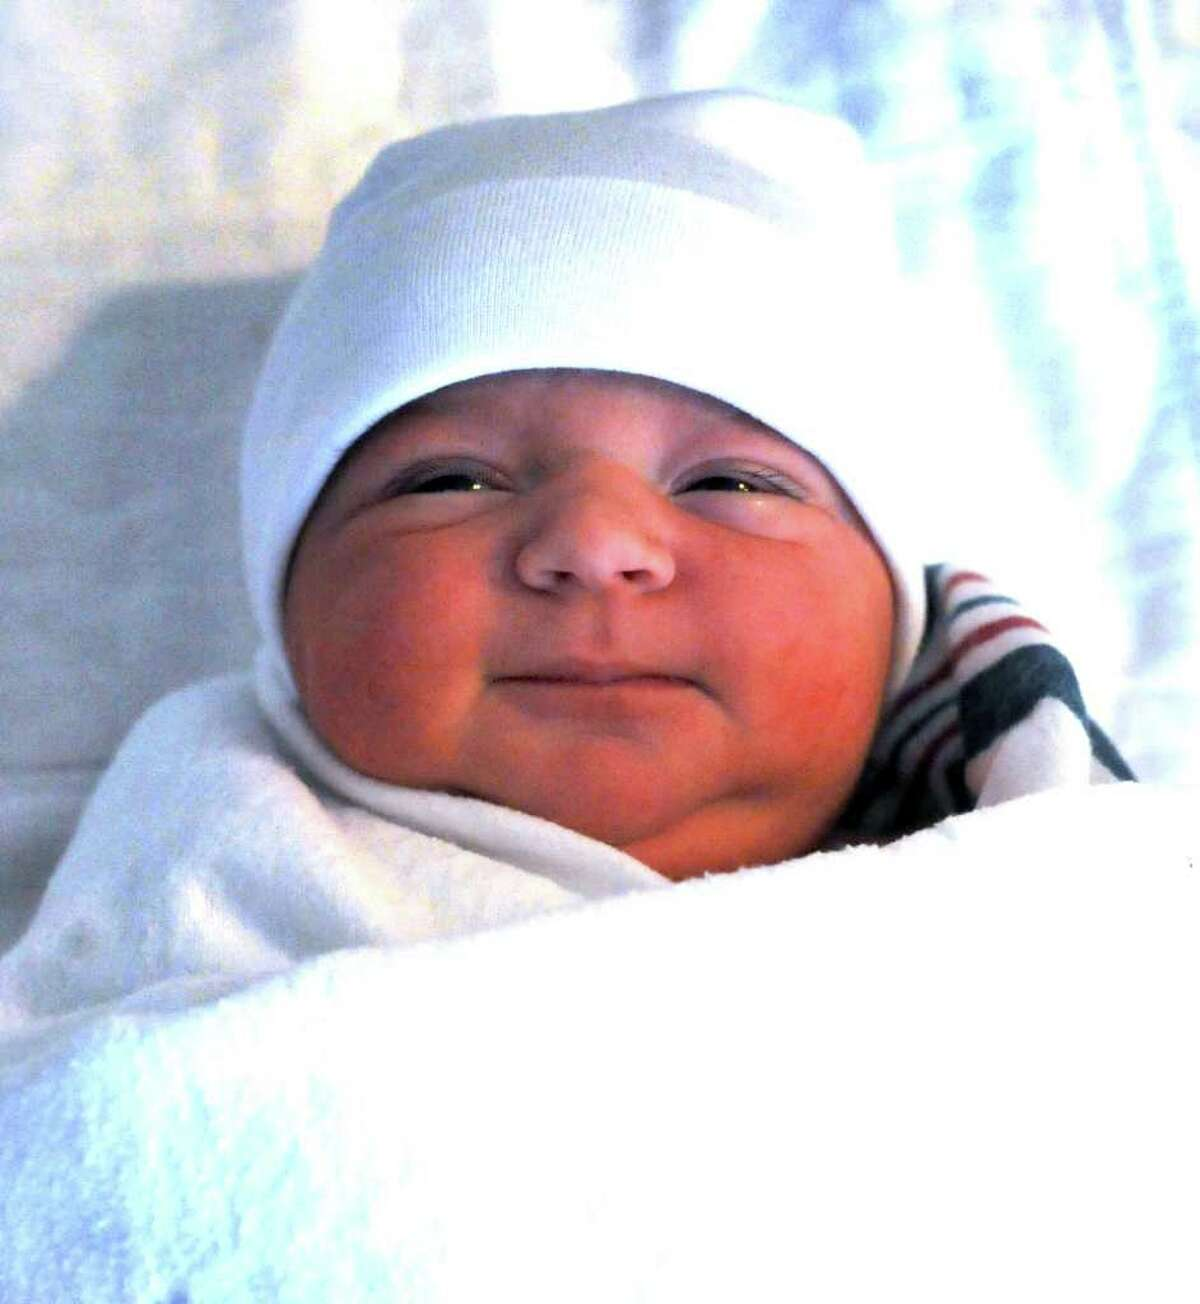 Arista, the first baby of the New Year, born to Sabit Vrzivoli, 33, and his wife Arta, 28, of Southbury, at Danbury Hospital at 9:54 A.M. Sunday, Jan 1, 2011.